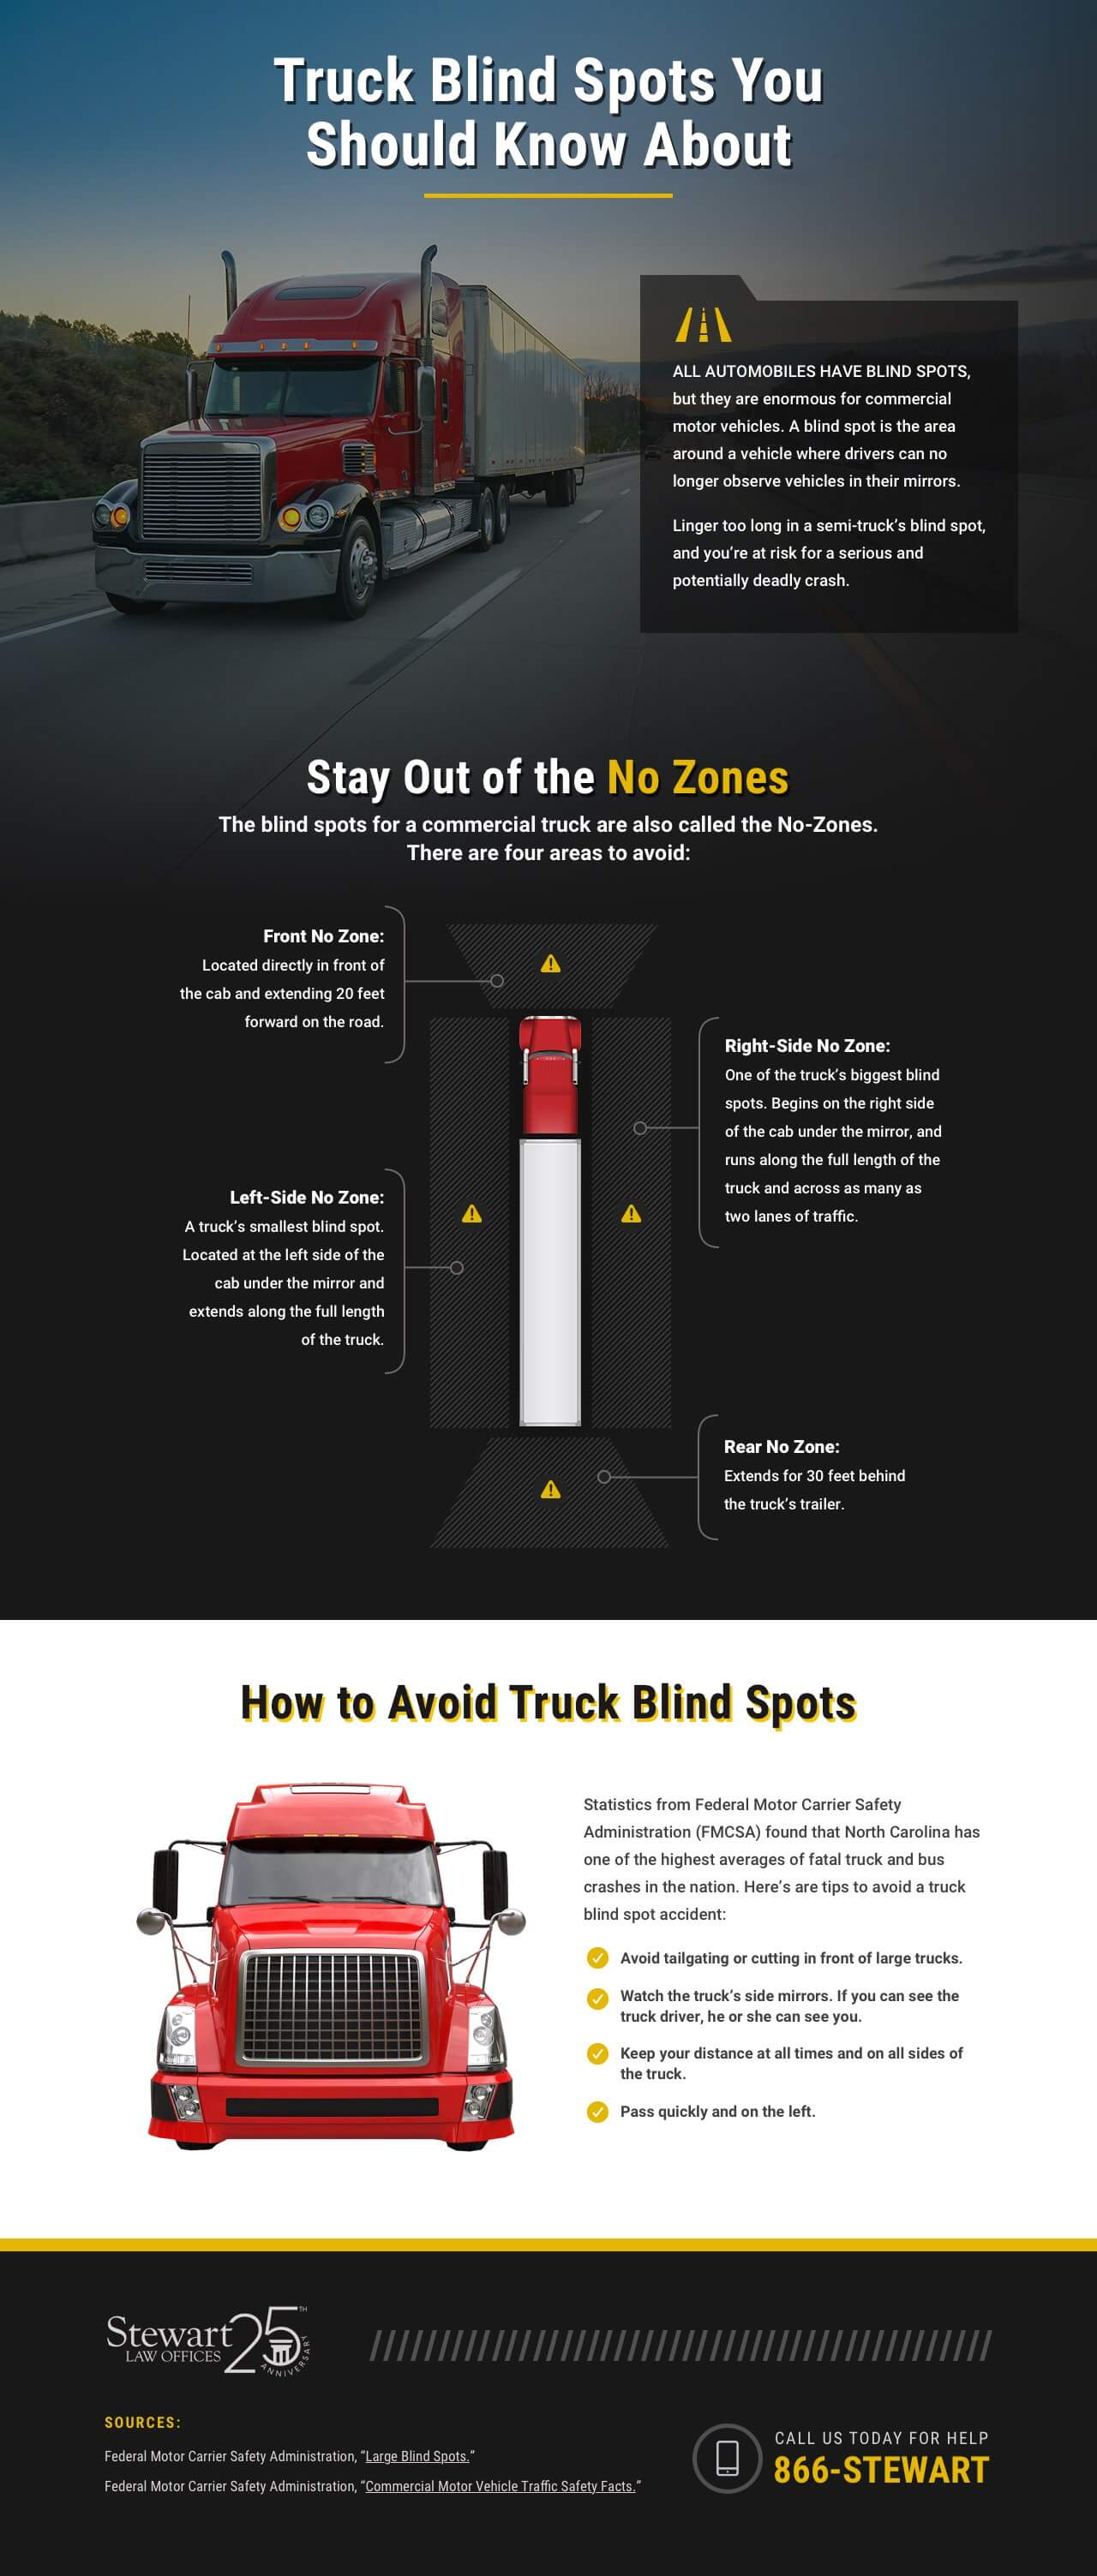 Truck Blind Spots You Should Know About - Stewart Law Offices